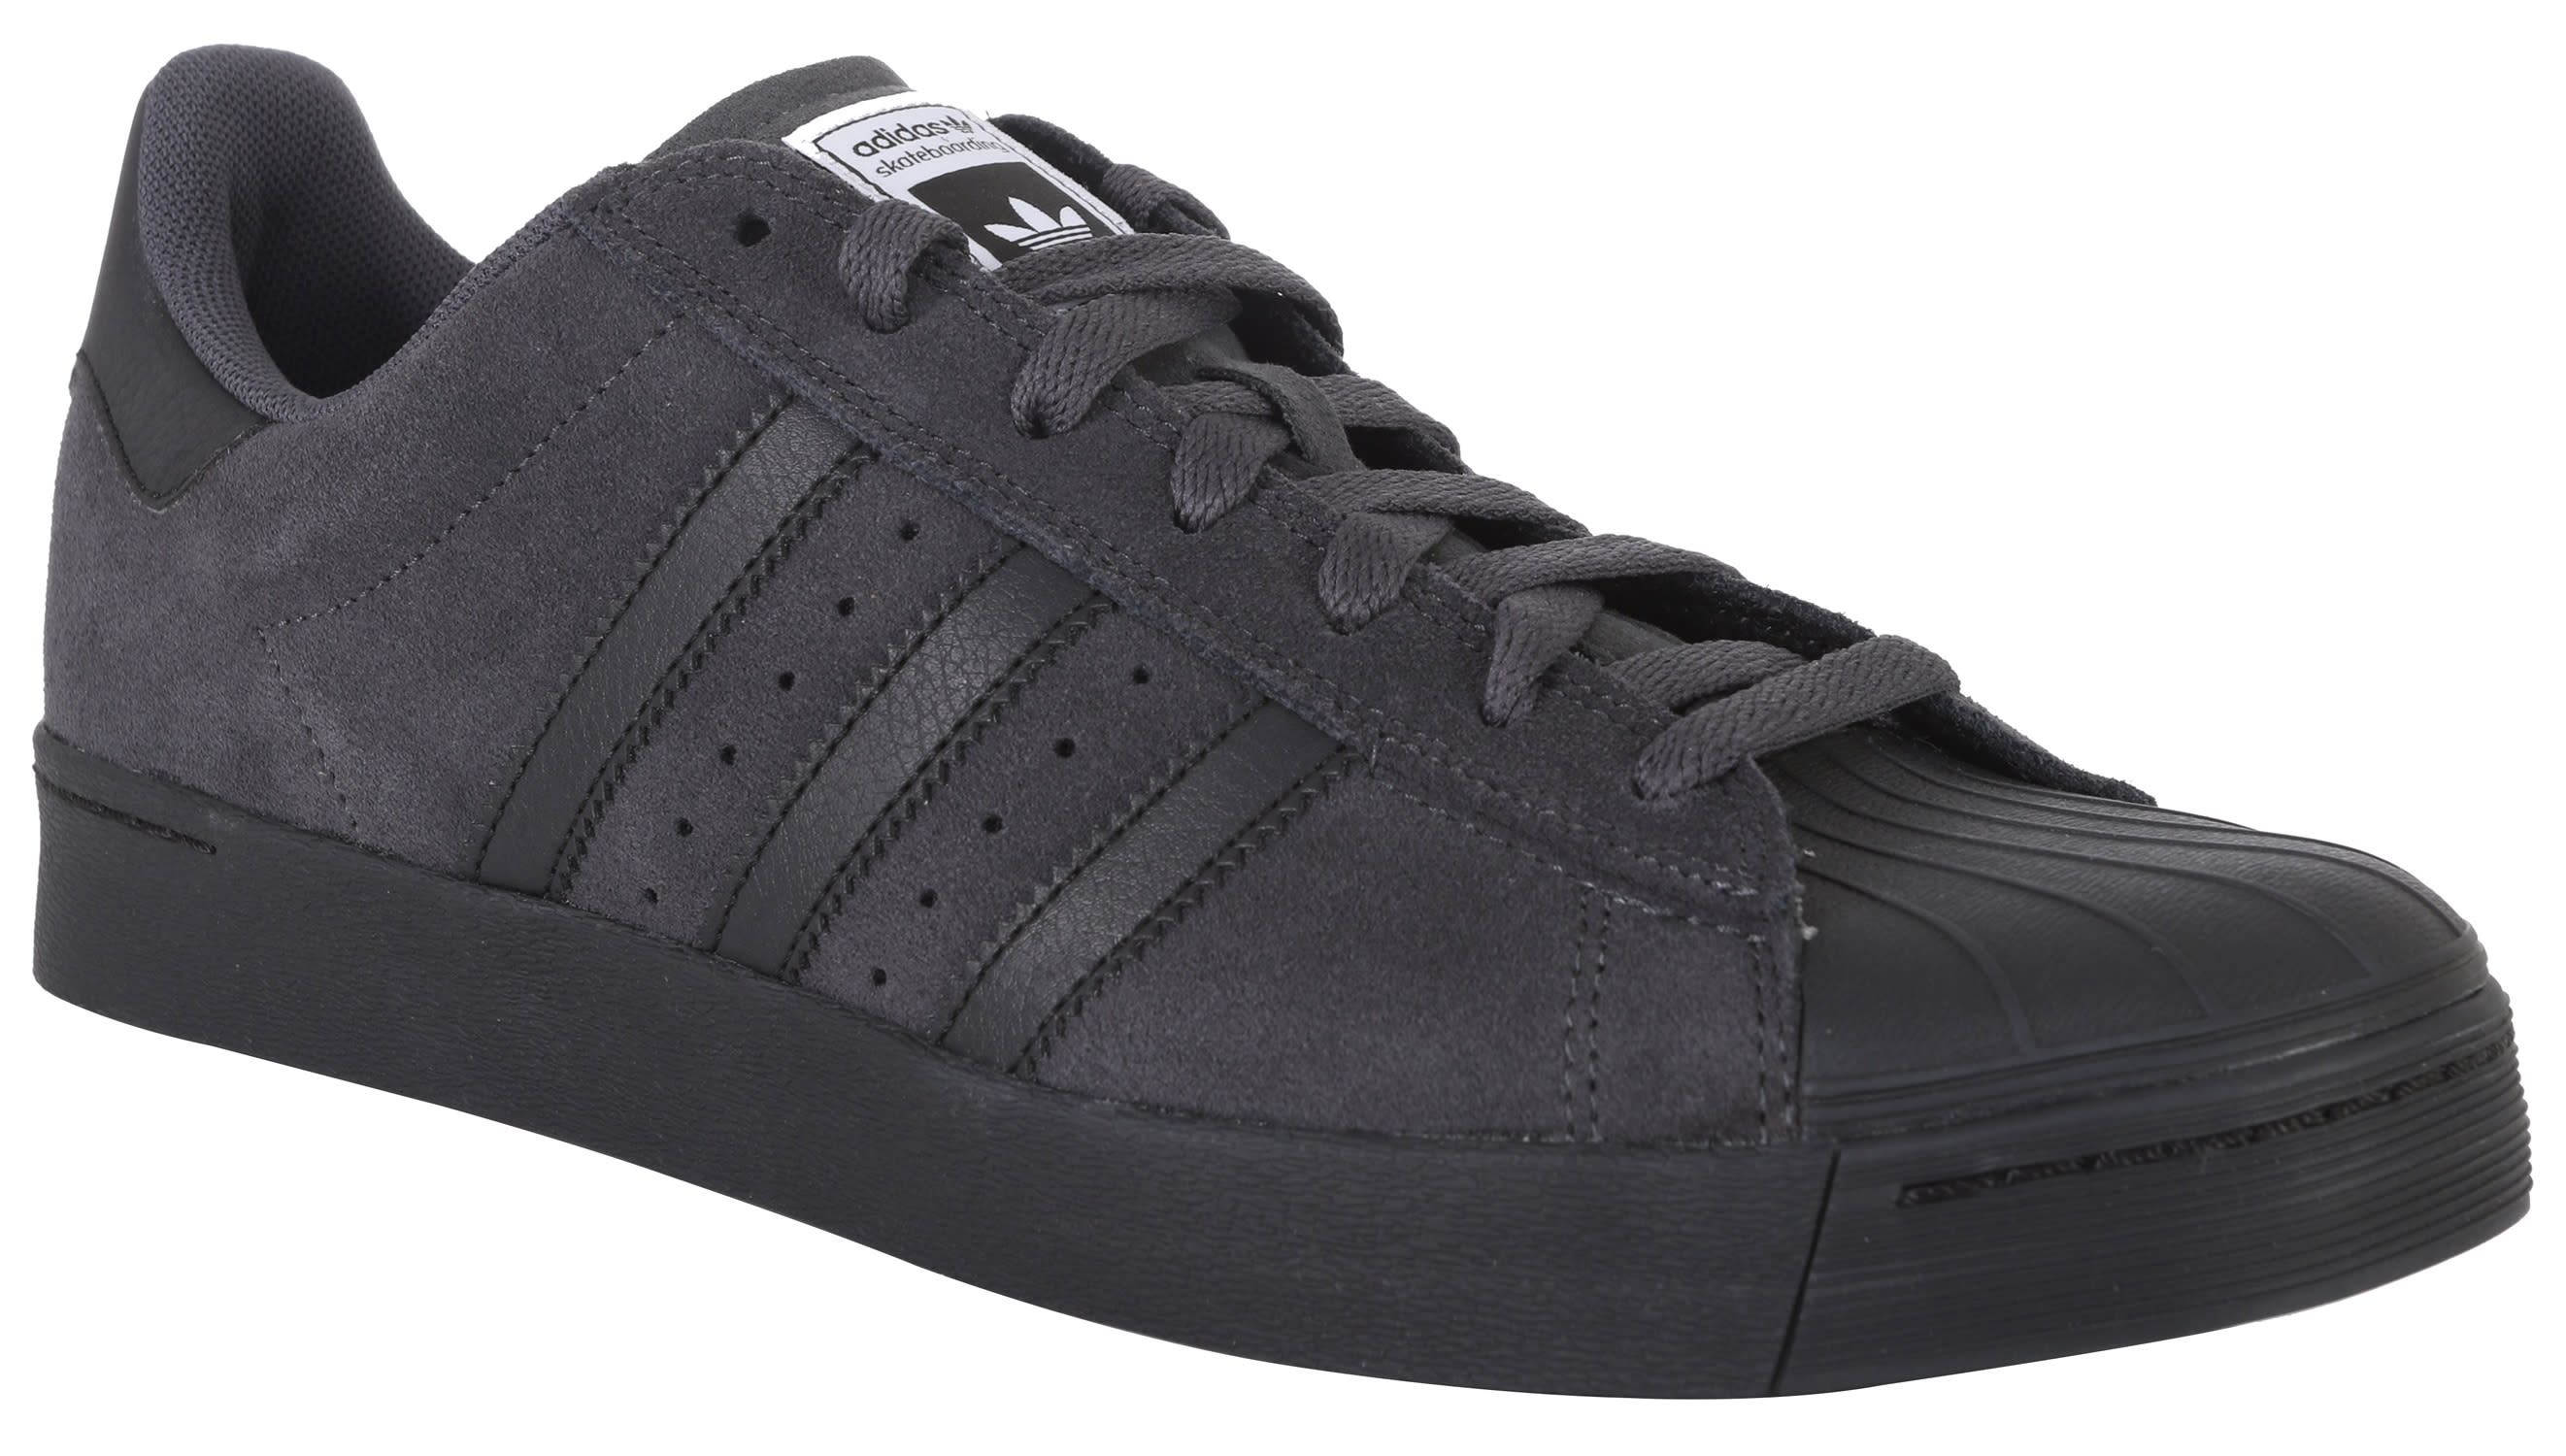 big sale 96fd7 4c5a6 Adidas Superstar Vulc ADV Skate Shoes - thumbnail 2